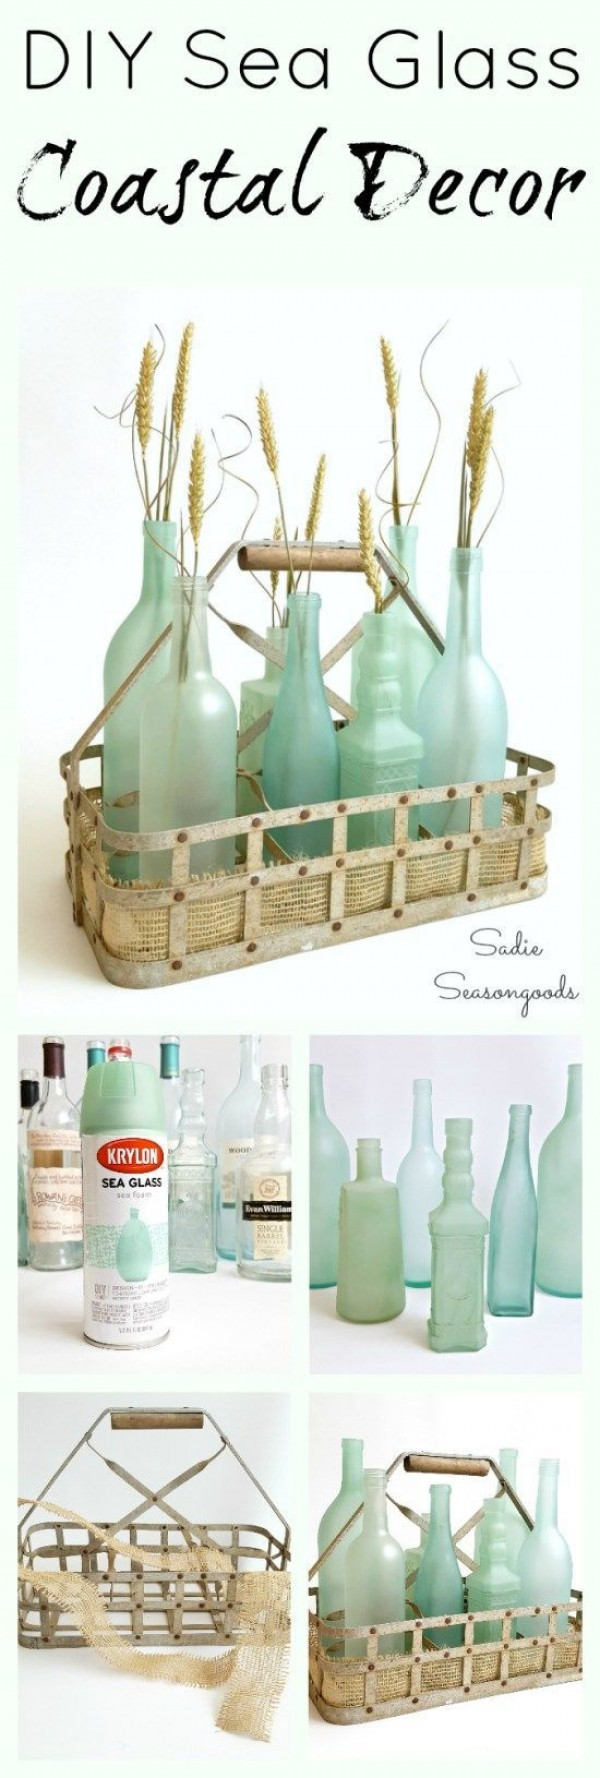 Sea Glass Bottles.